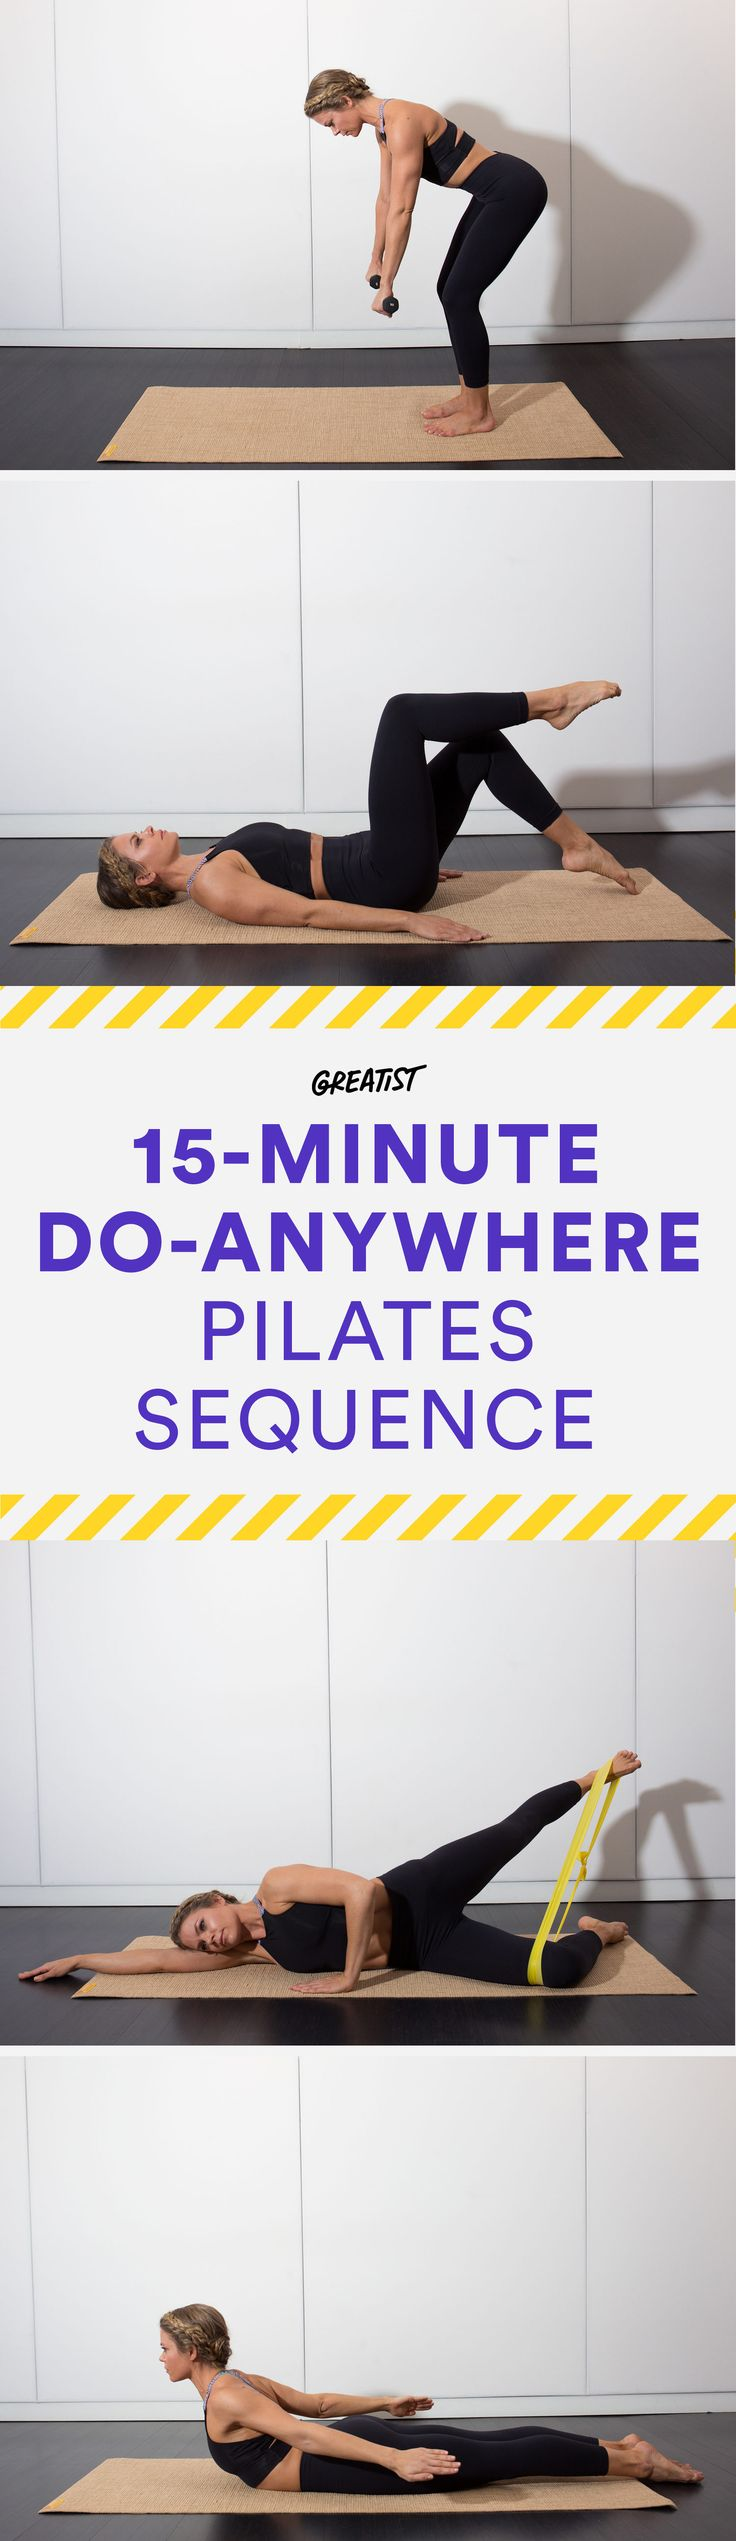 Let's be real: Nobody has room for a reformer.  #pilates #workout #fitness http://greatist.com/move/pilates-best-exercises-to-do-without-reformer